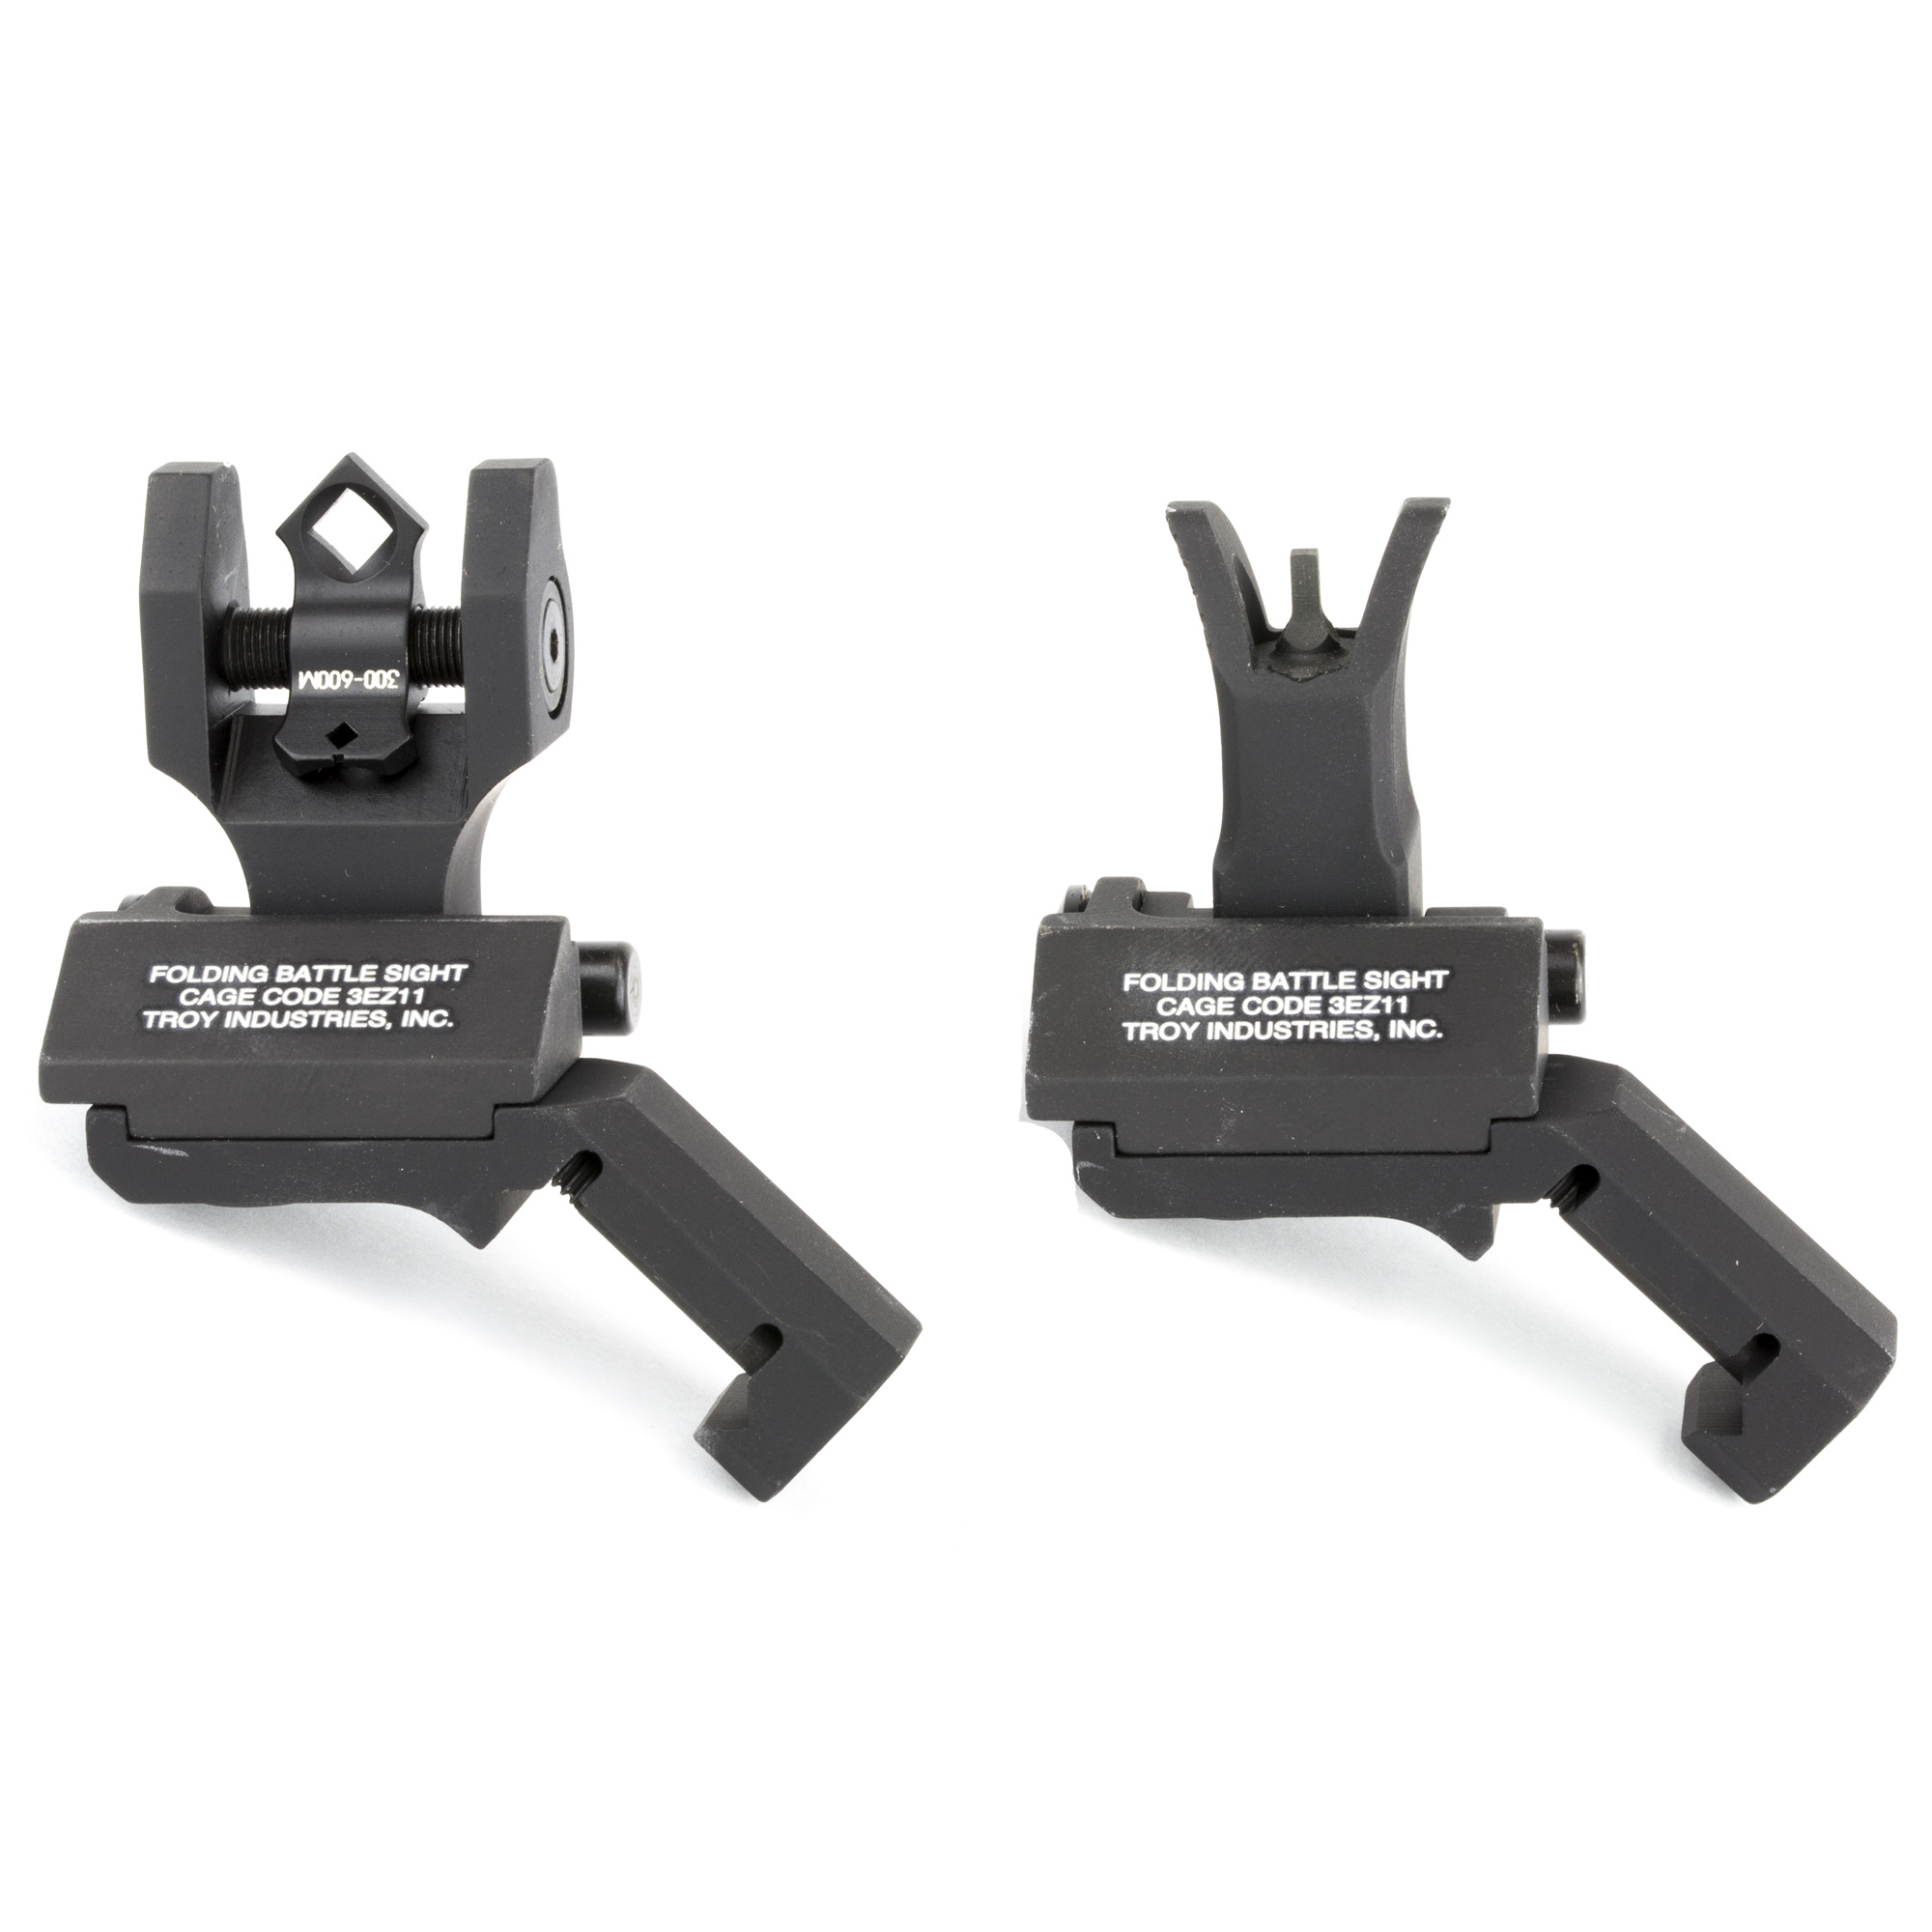 """Durability and dead-on accuracy have made Troy Industries Folding BattleSights the choice of Special Ops and tactical users worldwide. The TROY 45 Degree Folding BattleSights fold compactly to both sides of the rifle. With an ambidextrous sight base"""" TROY 45 Degree BattleSights work seamlessly with magnified optics. Easy to install and deploy"""" these sights position apertures at factory height. A stainless-steel cross-locking system ensures sight remains upright and zeroed under extreme combat conditions."""